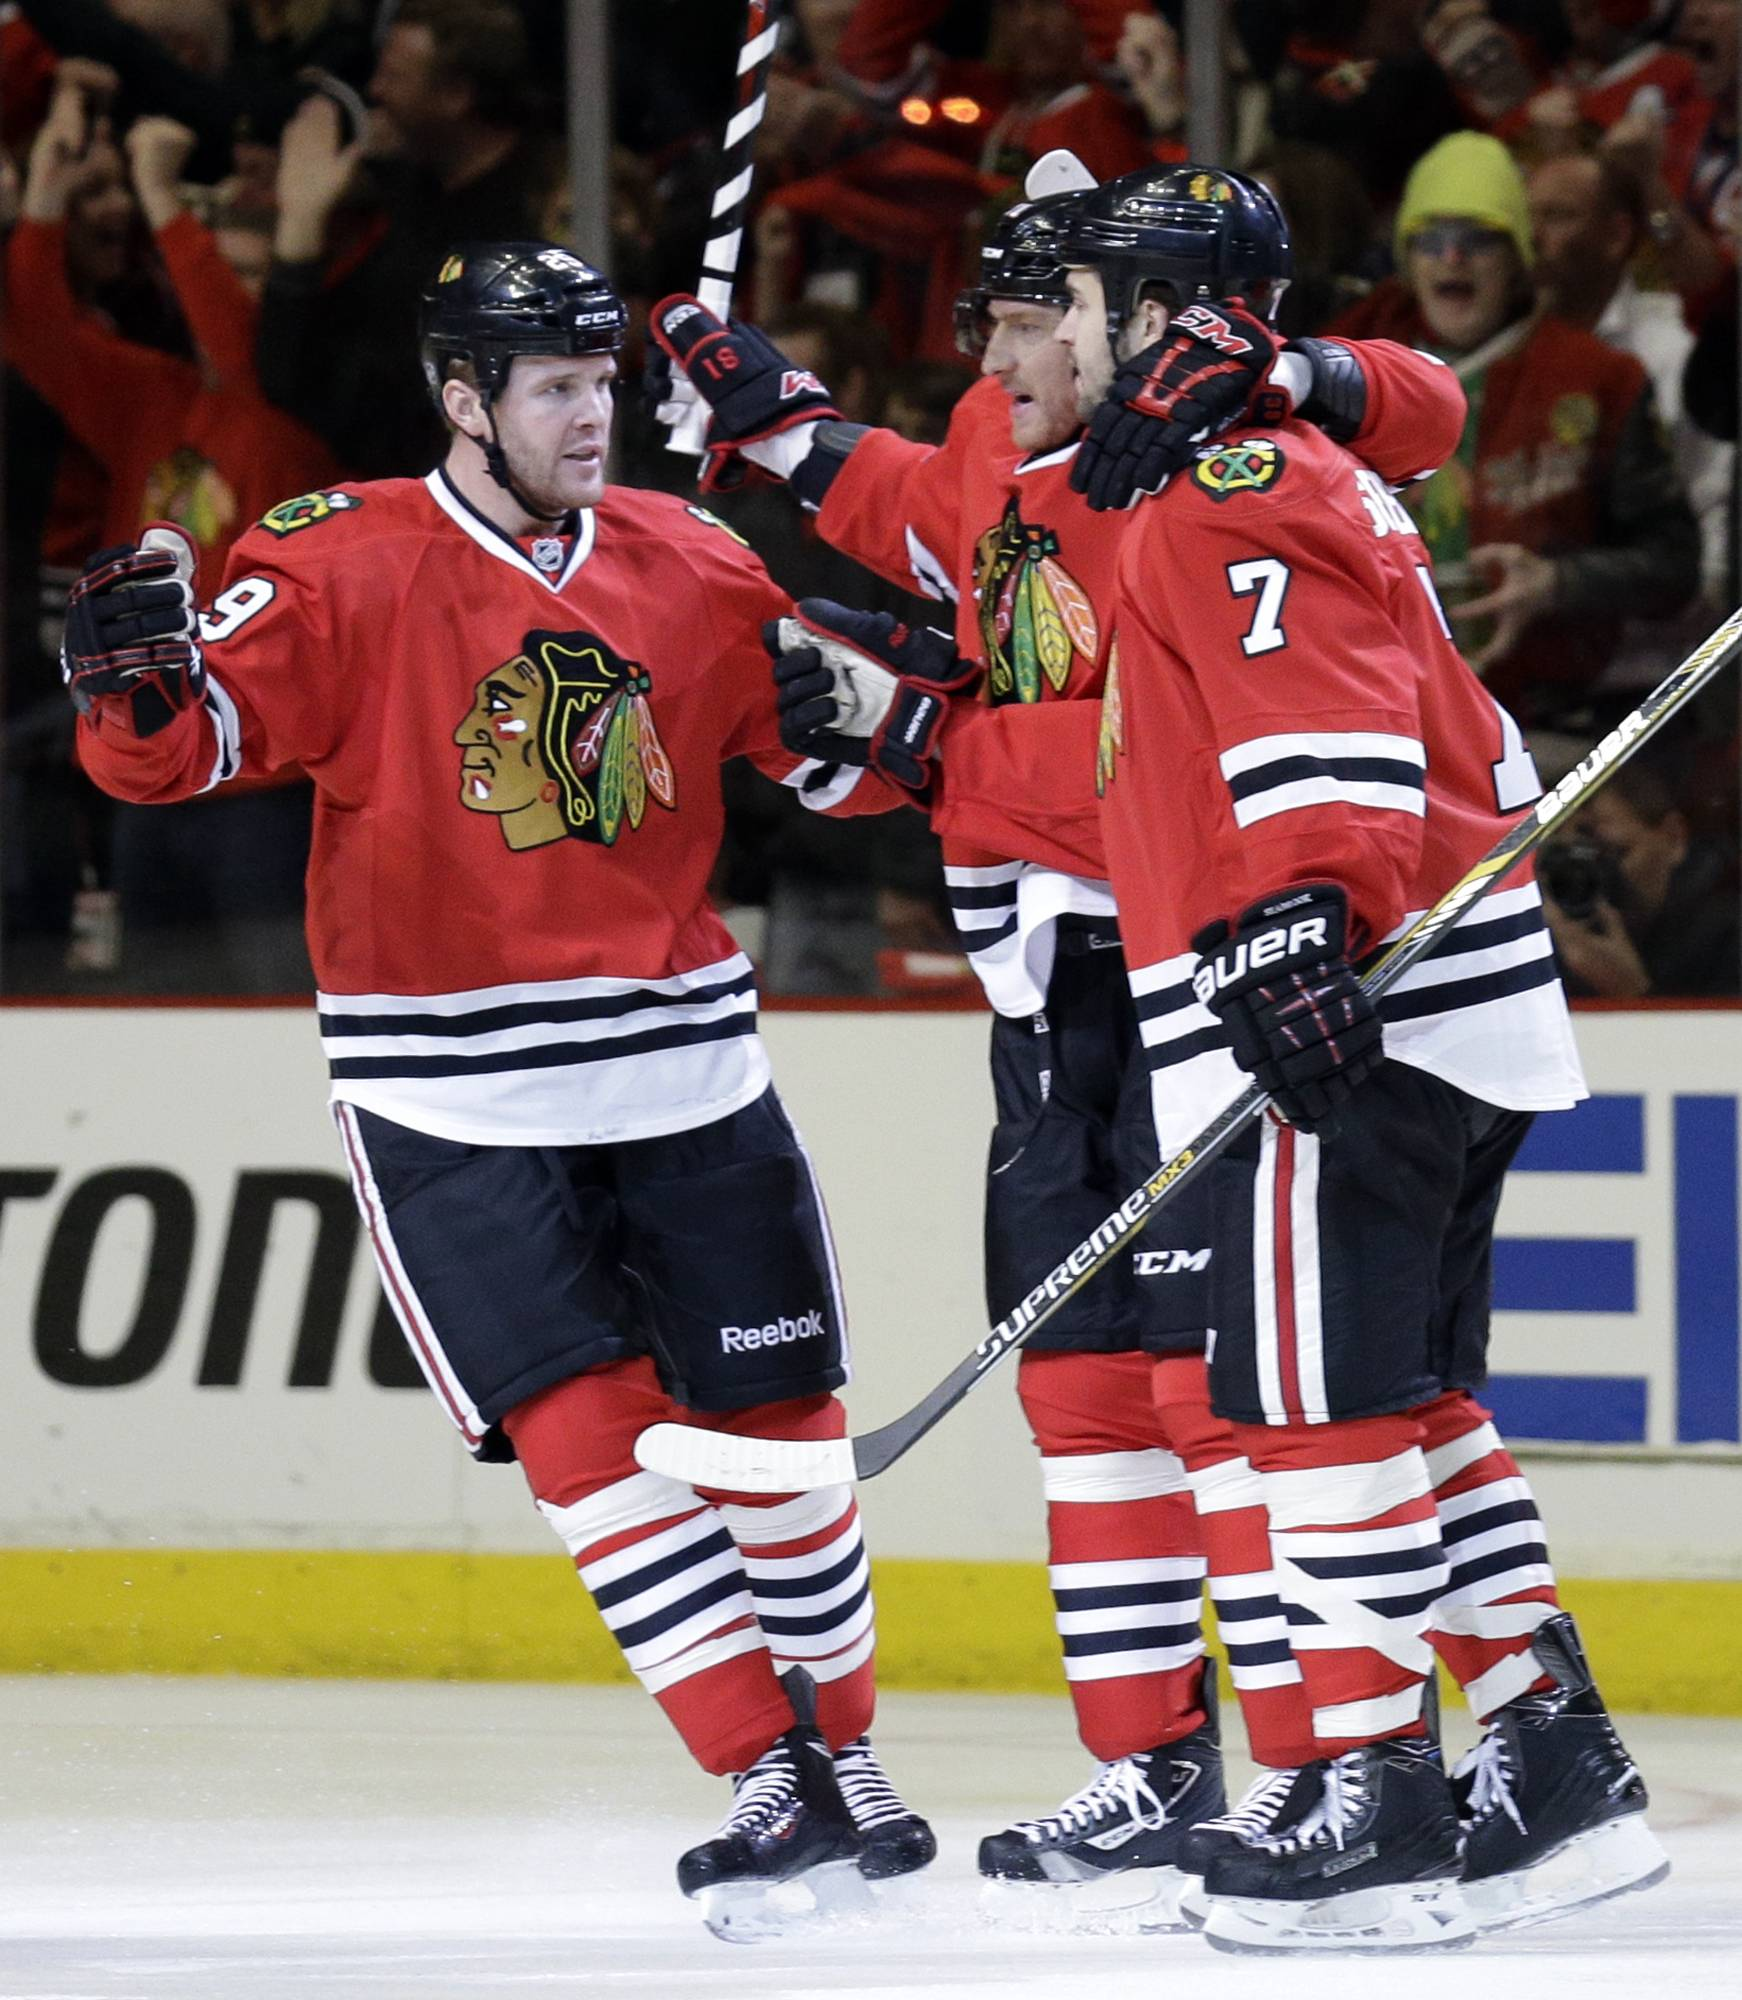 Chicago Blackhawks' Bryan Bickell, left, celebrates with teammate Marian Hossa, center, and Brent Seabrook (7) after scoring a goal against the St. Louis Blues during the first period.